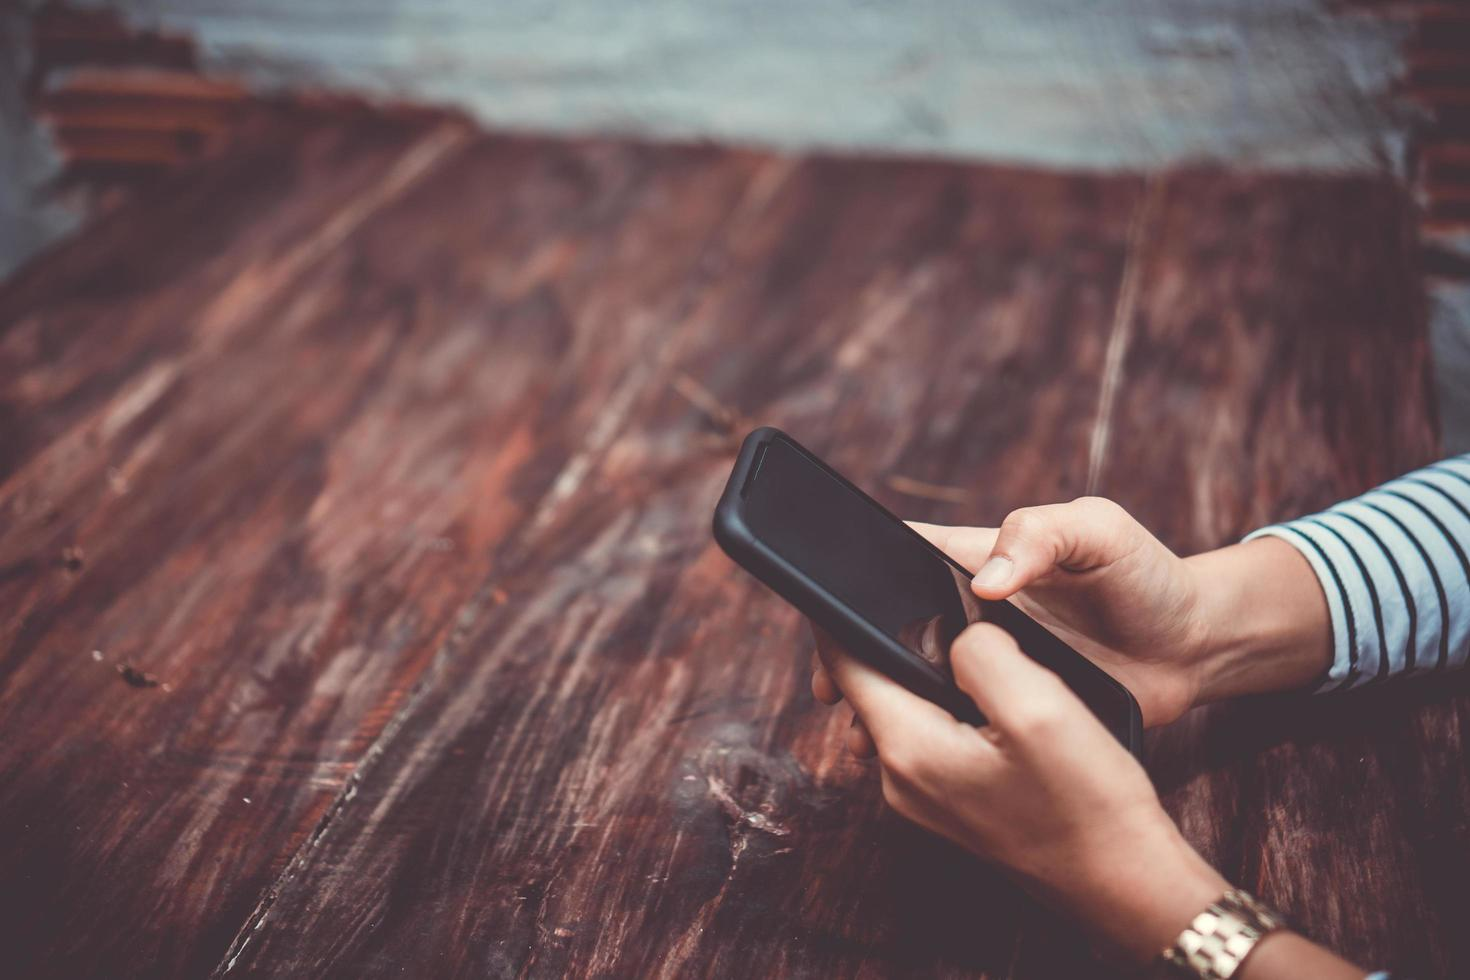 Woman using a smartphone at cafe shop photo